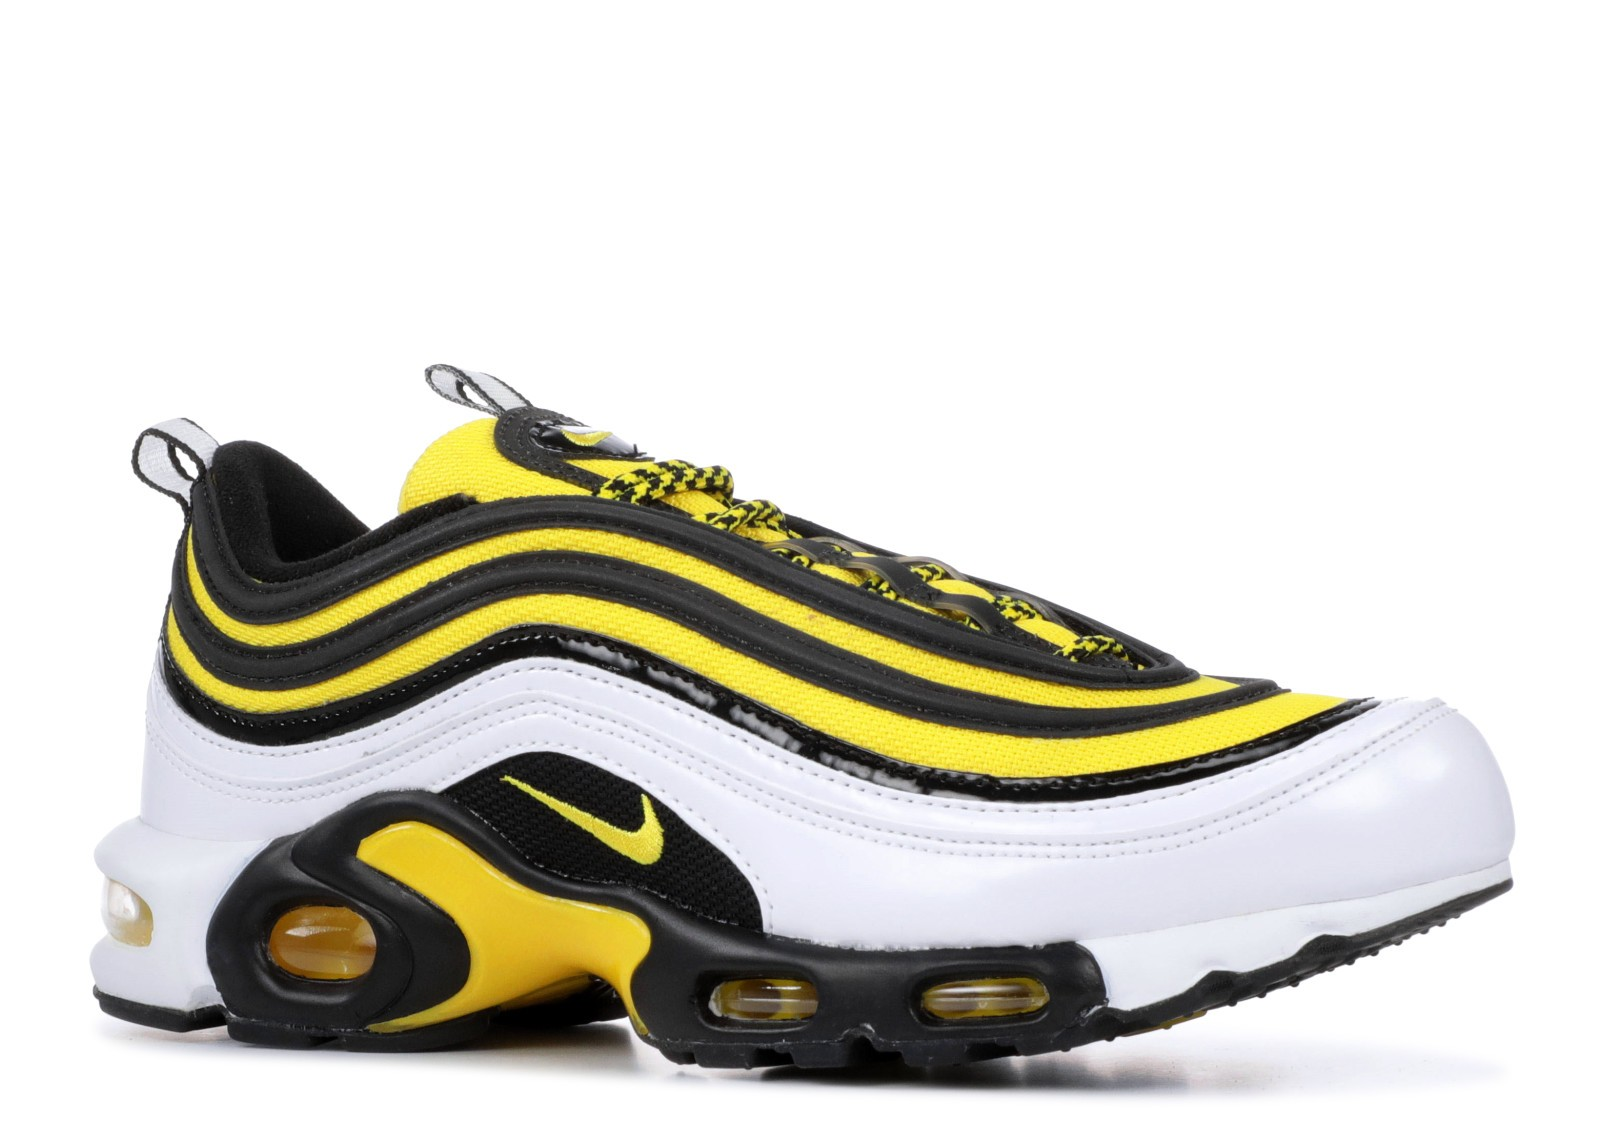 Nike Air Max Plus 97 Tuned Frequency